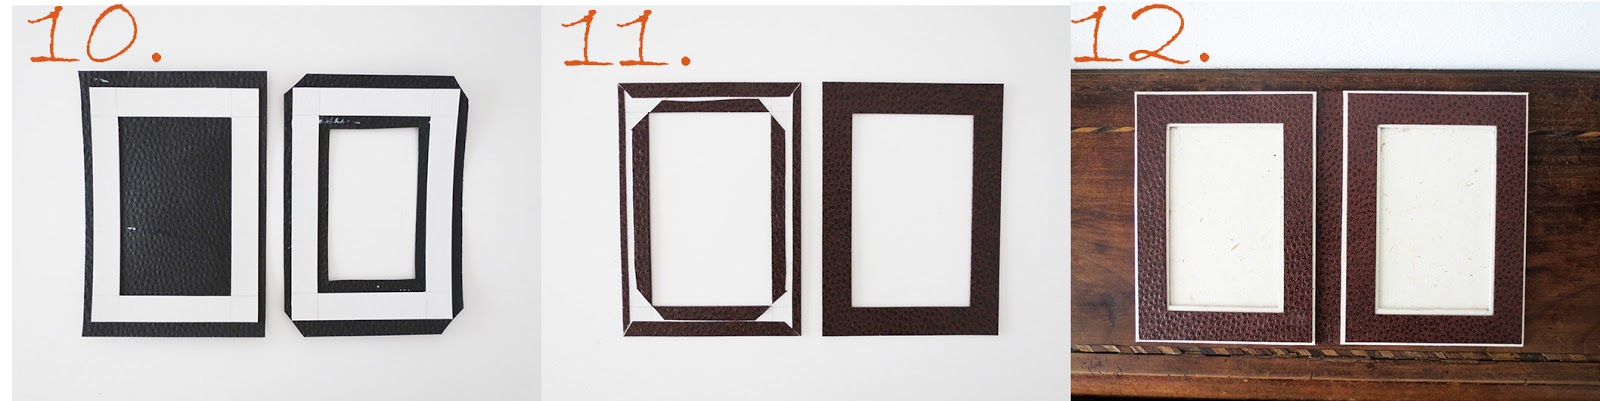 8 cut 2 rectangles on beige paper and glue on the front 9 cut angles and center fold and glue on the back you must have 2 beige frames - Diy Cardboard Picture Frame